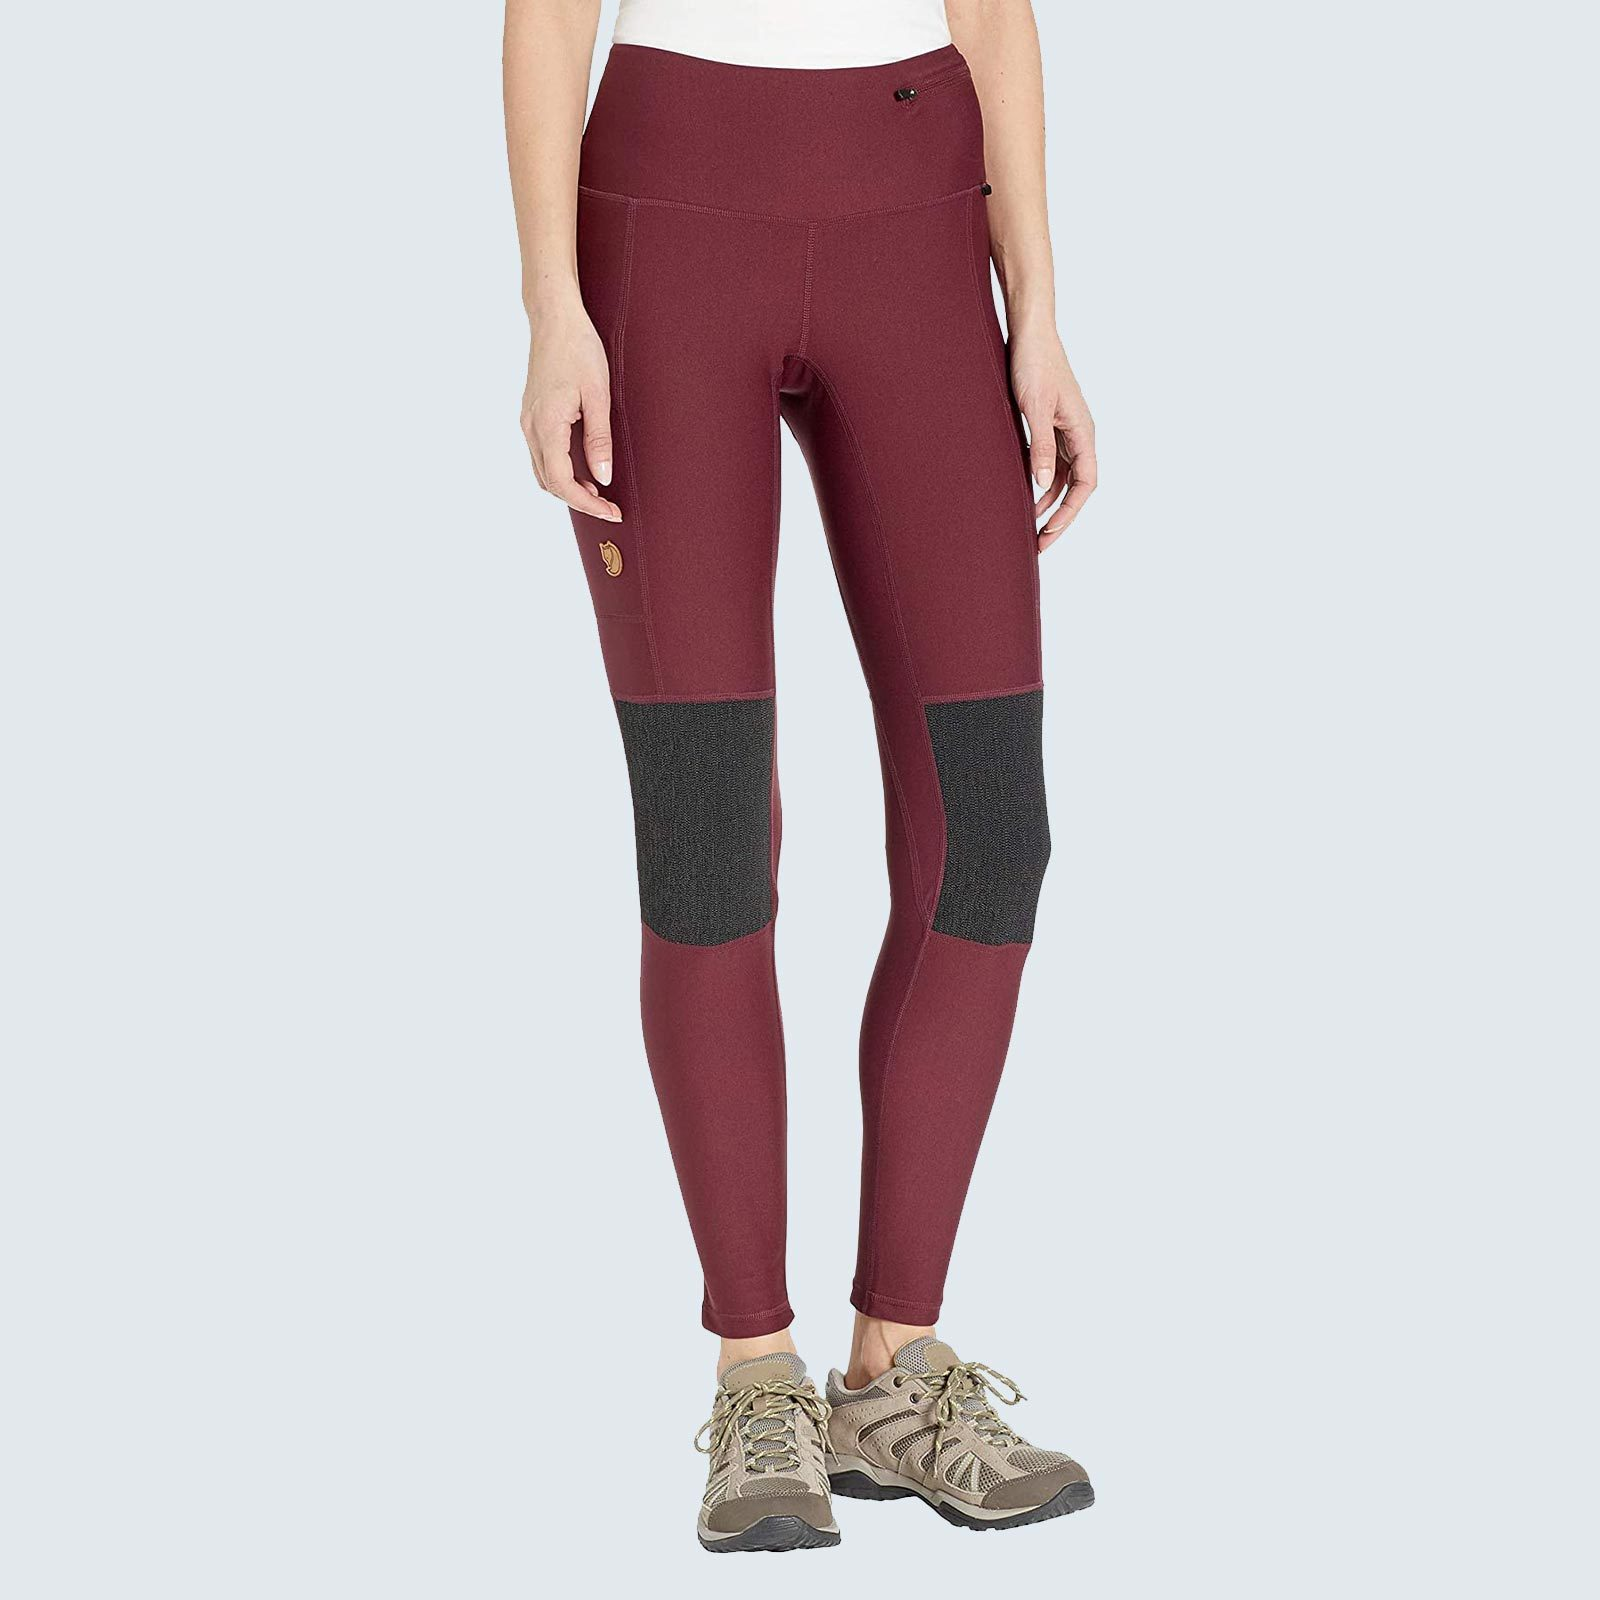 Best leggings for serious outdoor excursions: Fjallraven Abisko Trekking Tights